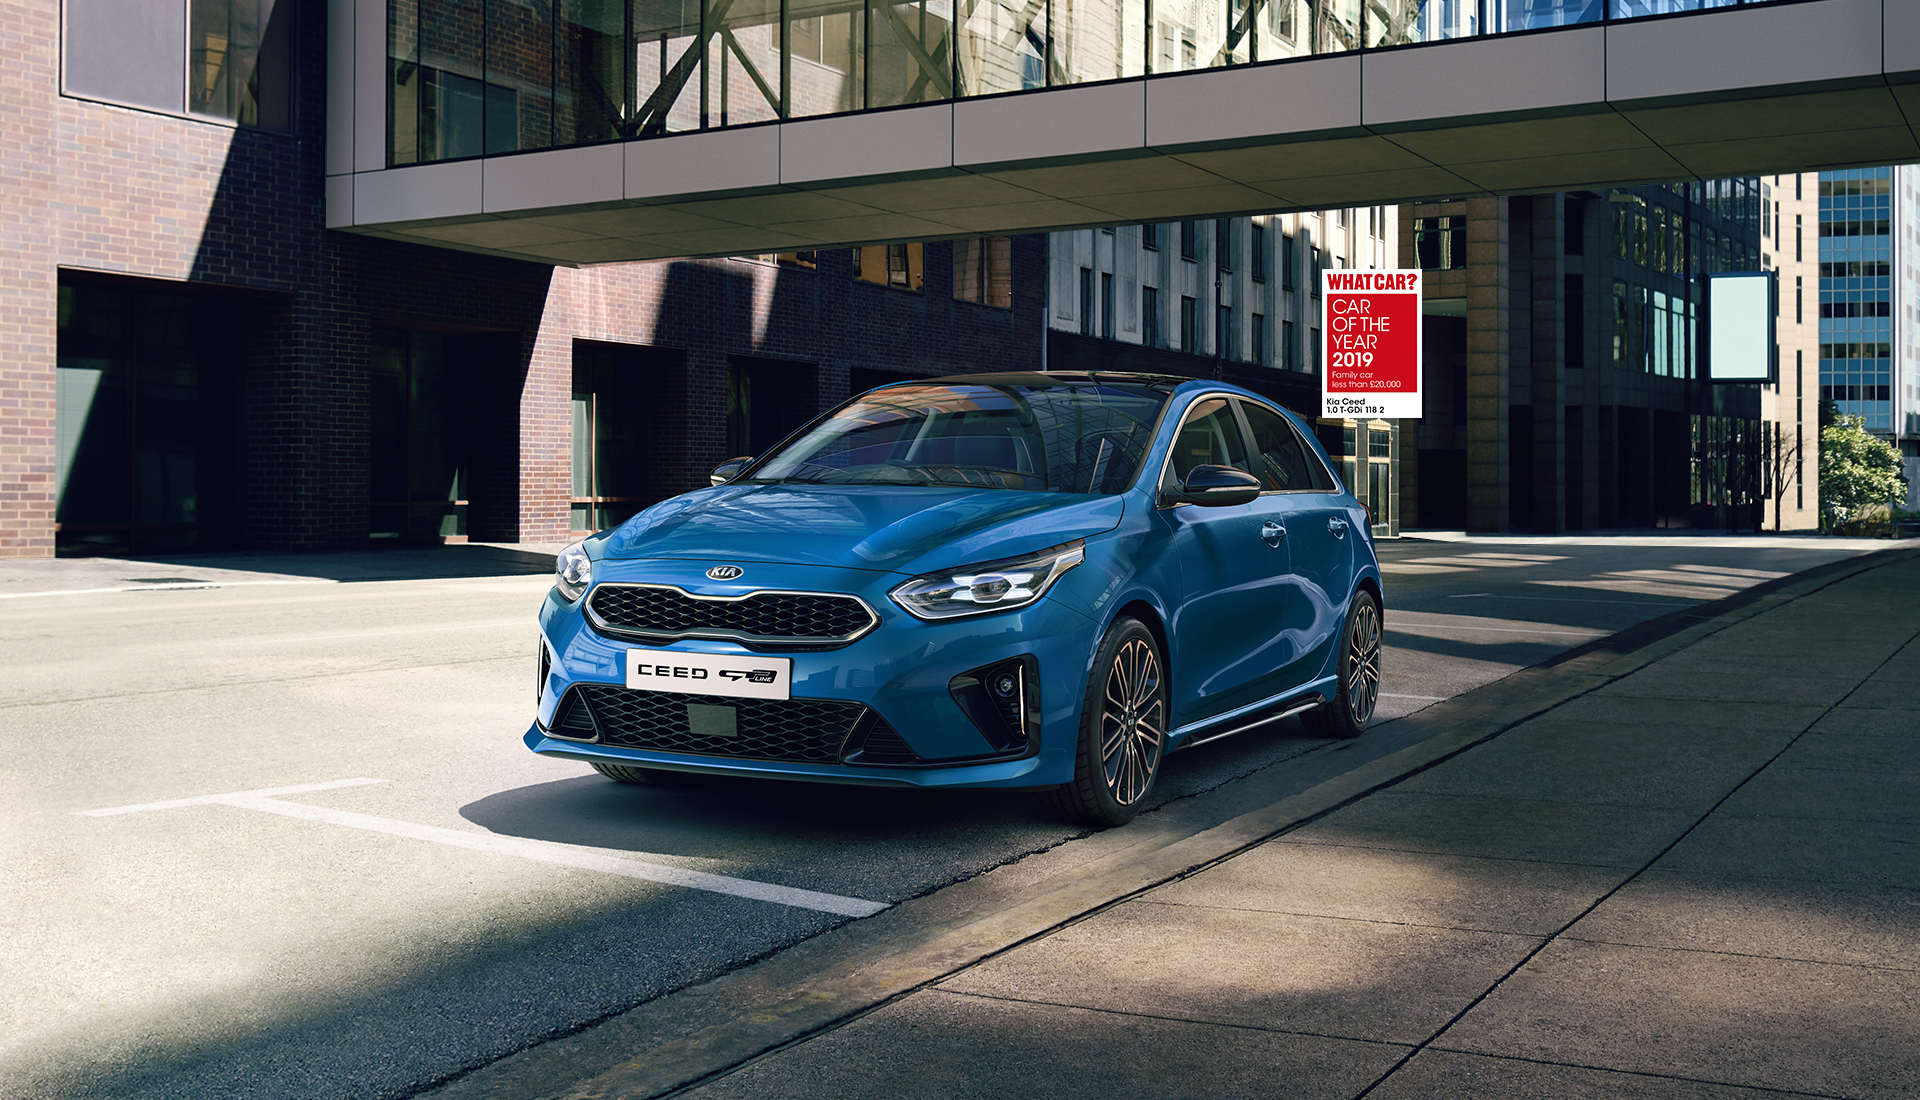 KIA CEED WINS CAR OF THE YEAR AT THE INTELLIGENT INSTRUCTOR AWARDS 2019